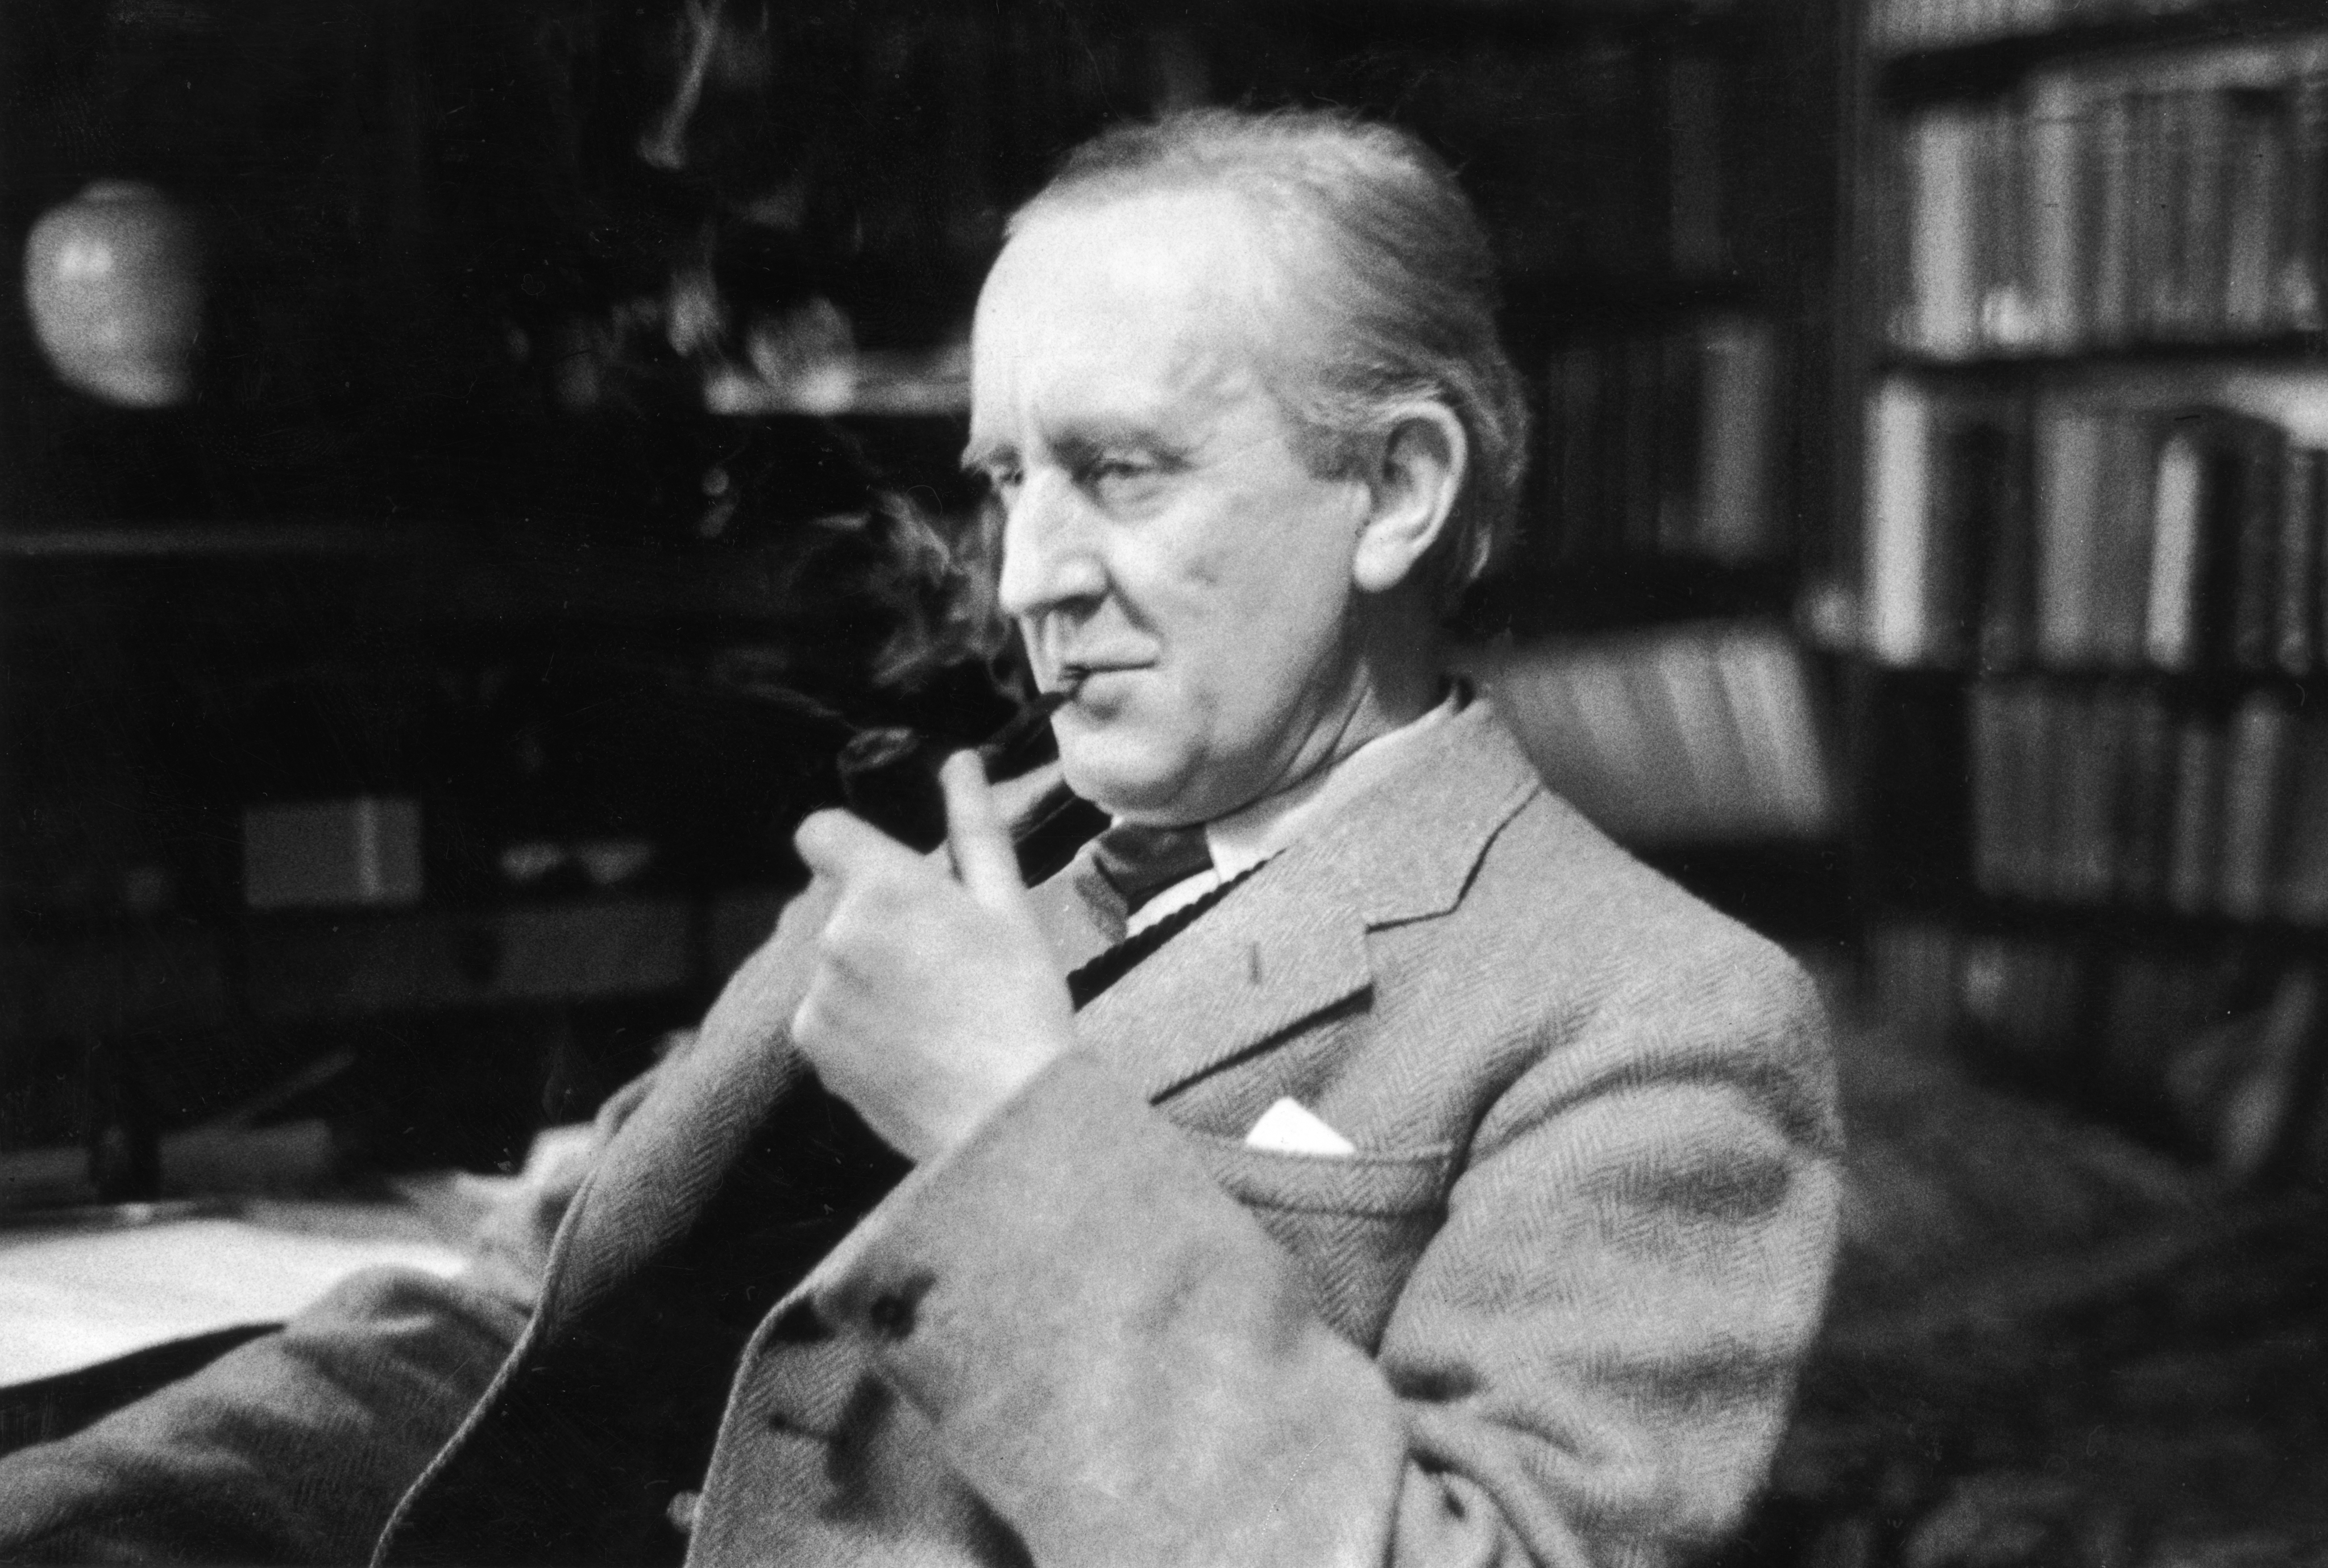 The Oxford house where JRR Tolkien wrote The Hobbit hits the market